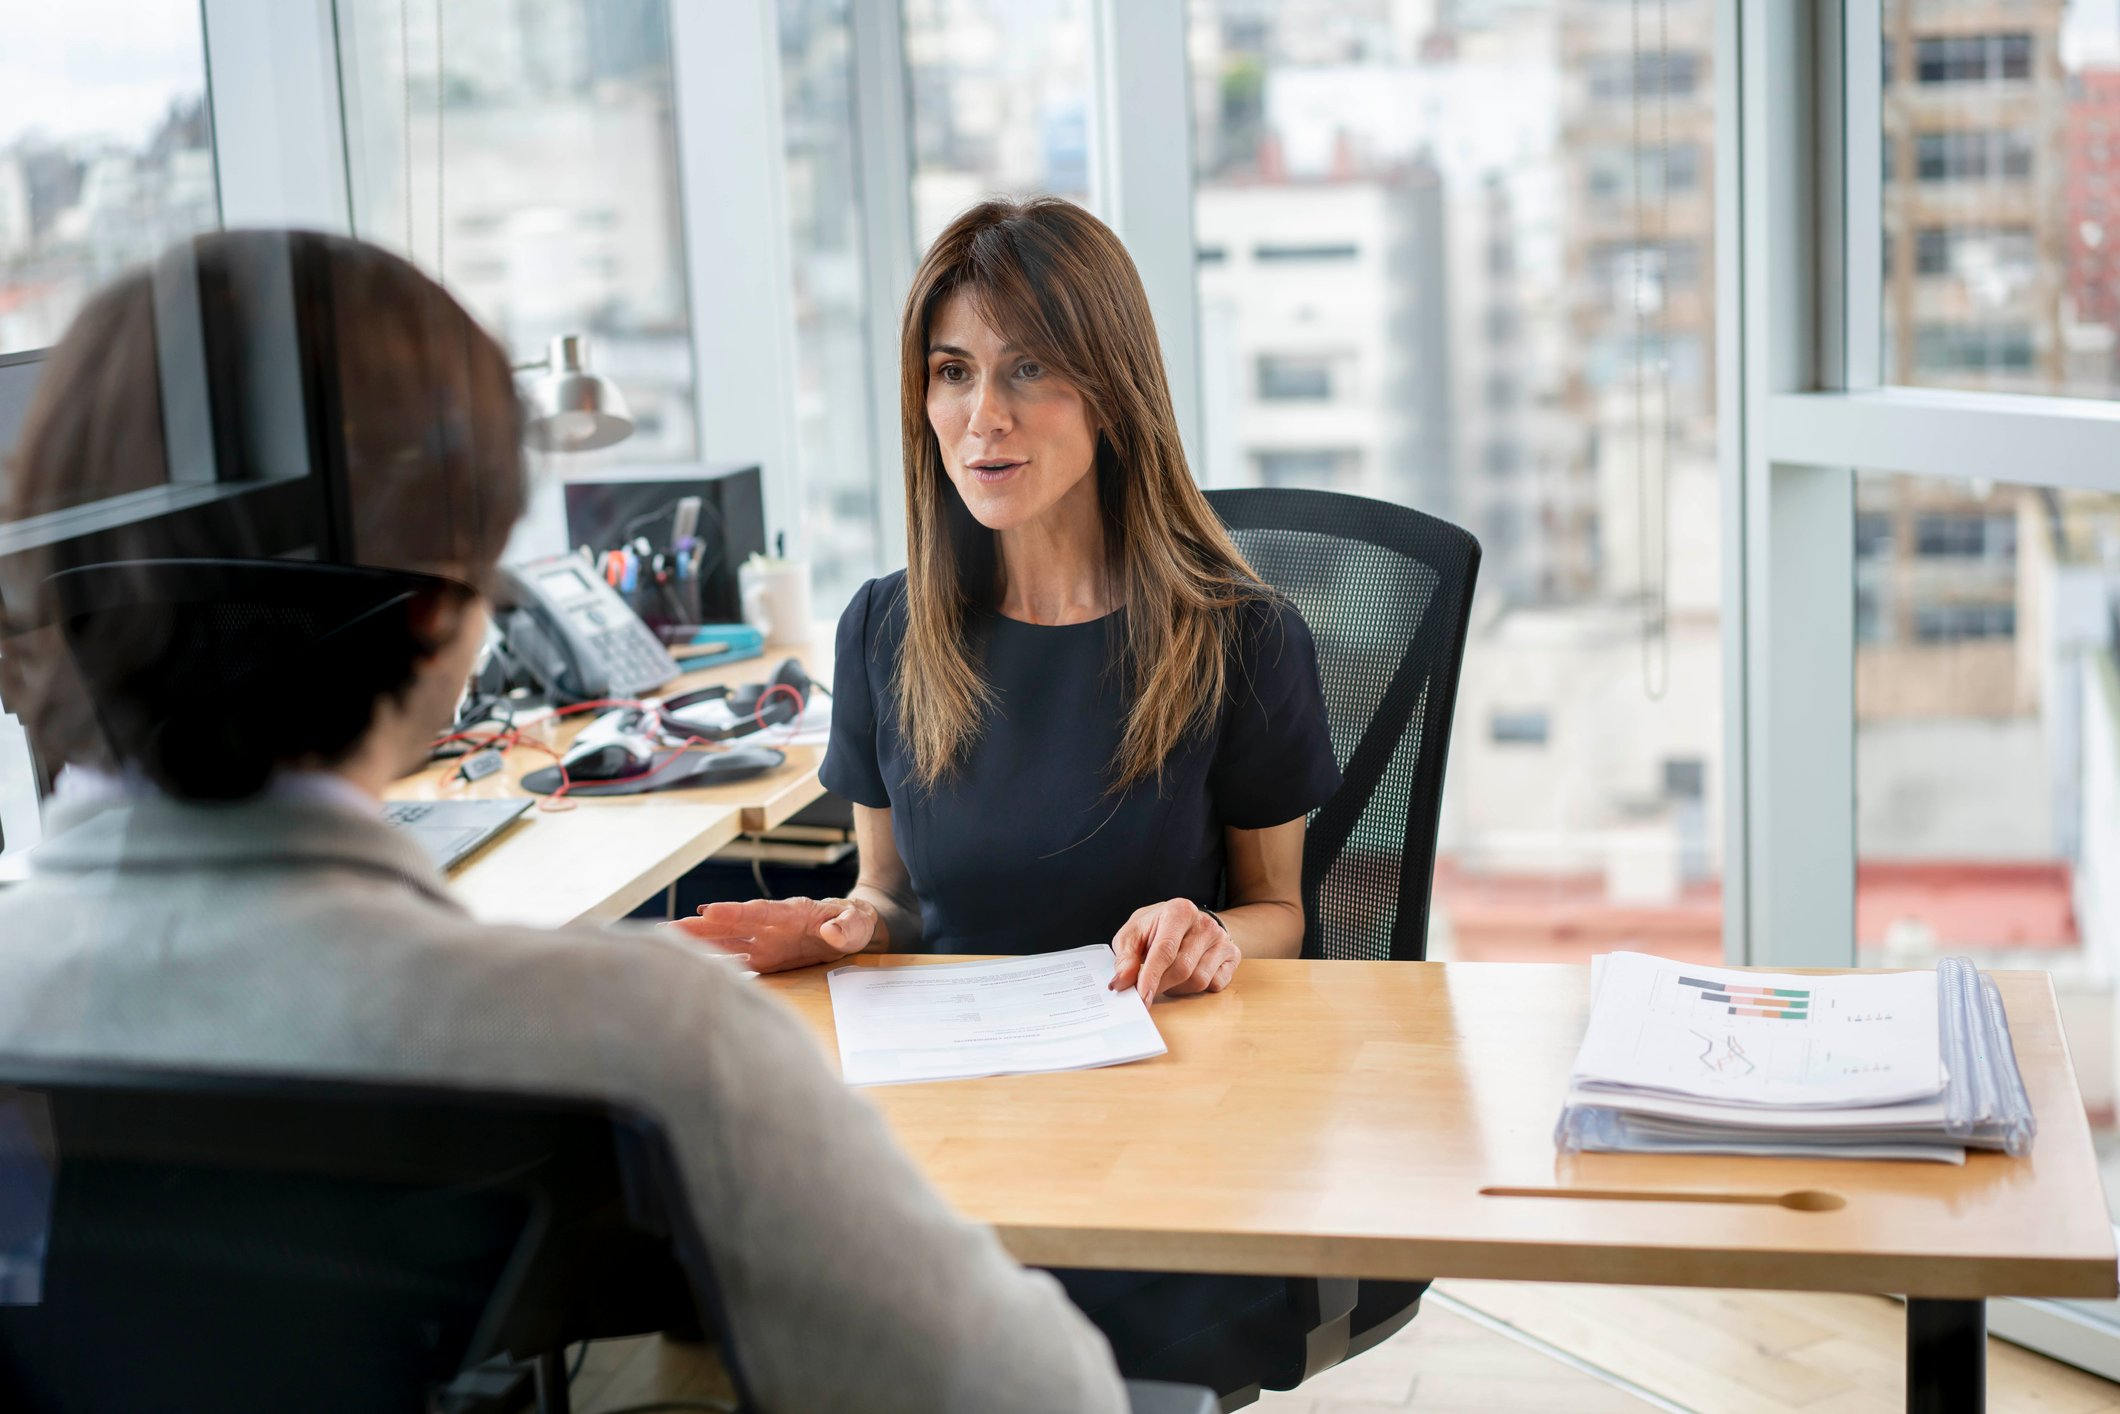 Woman at desk, in high-rise office, talking to man